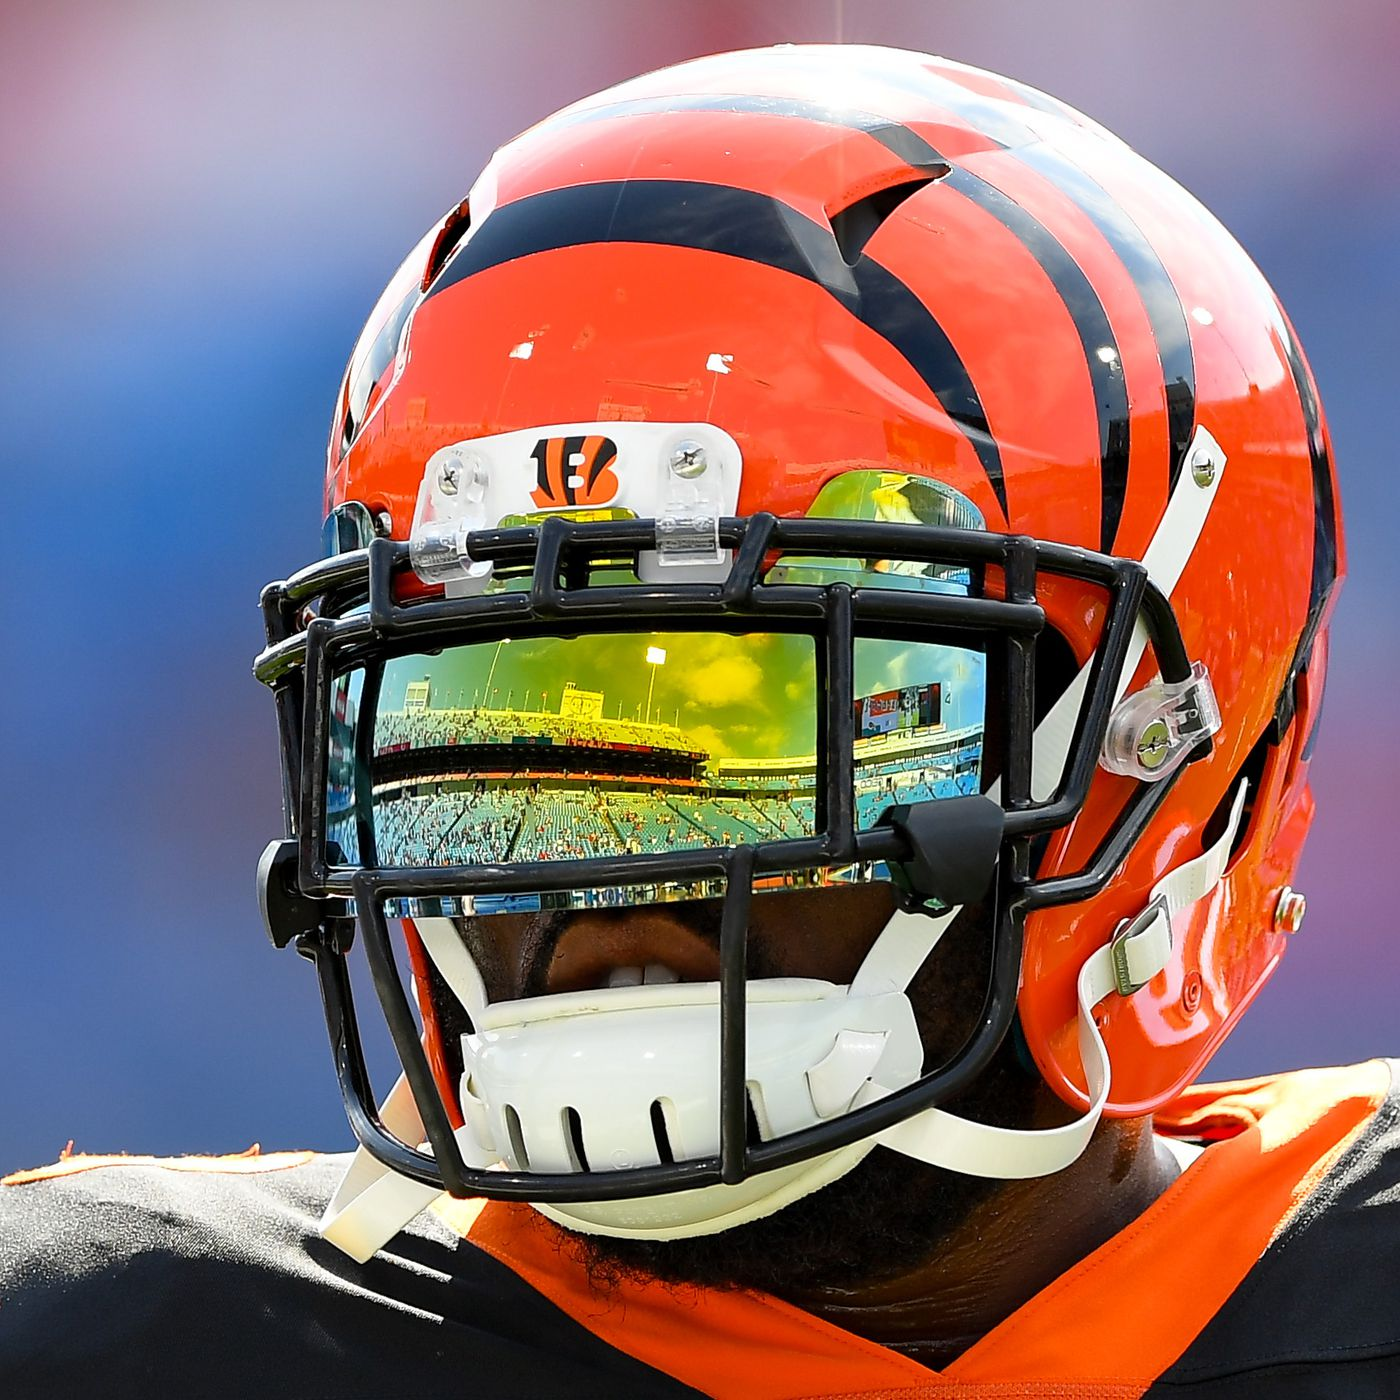 Nfl Covid 19 Protective Face Masks Being Developed For 2020 Season Cincy Jungle